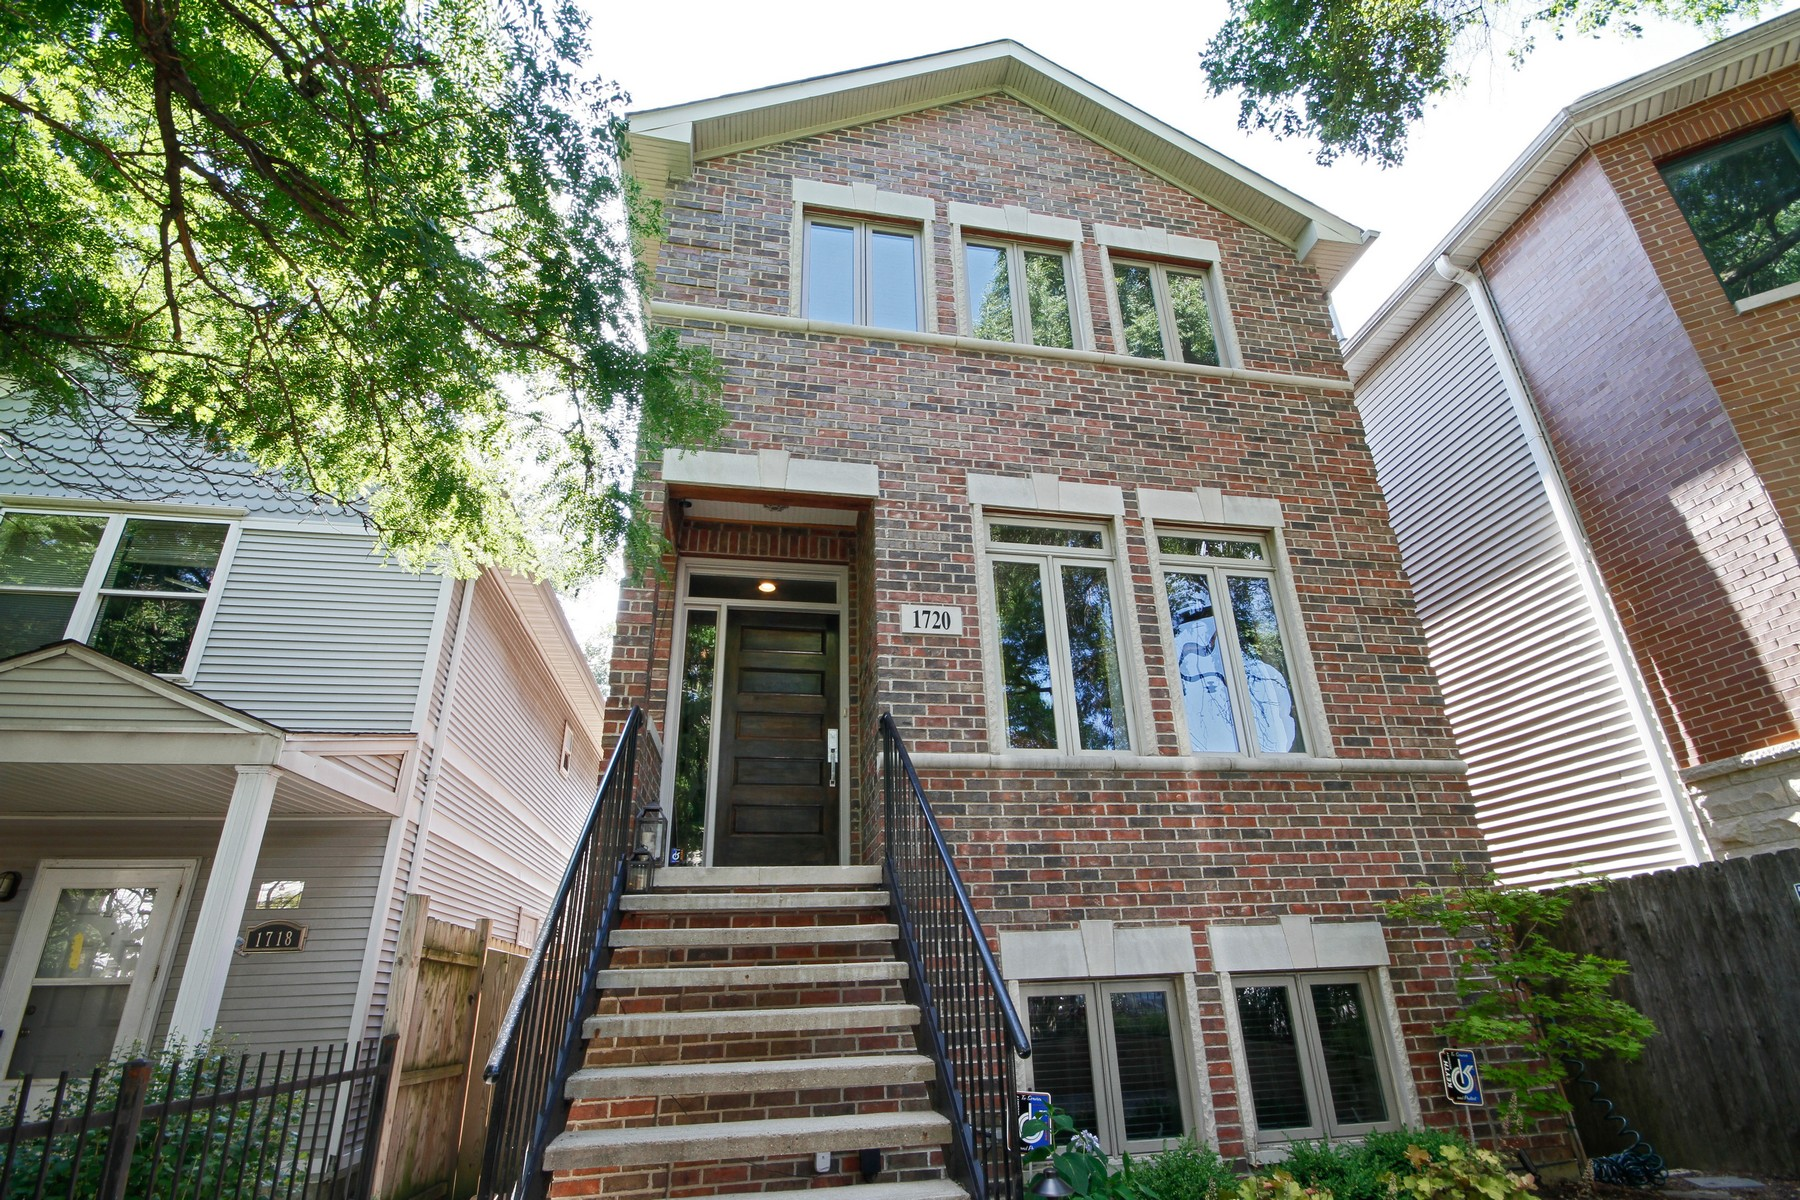 Single Family Home for Sale at Brick and Limestone Home in West Bucktown 1720 N Maplewood Avenue Logan Square, Chicago, Illinois, 60647 United States